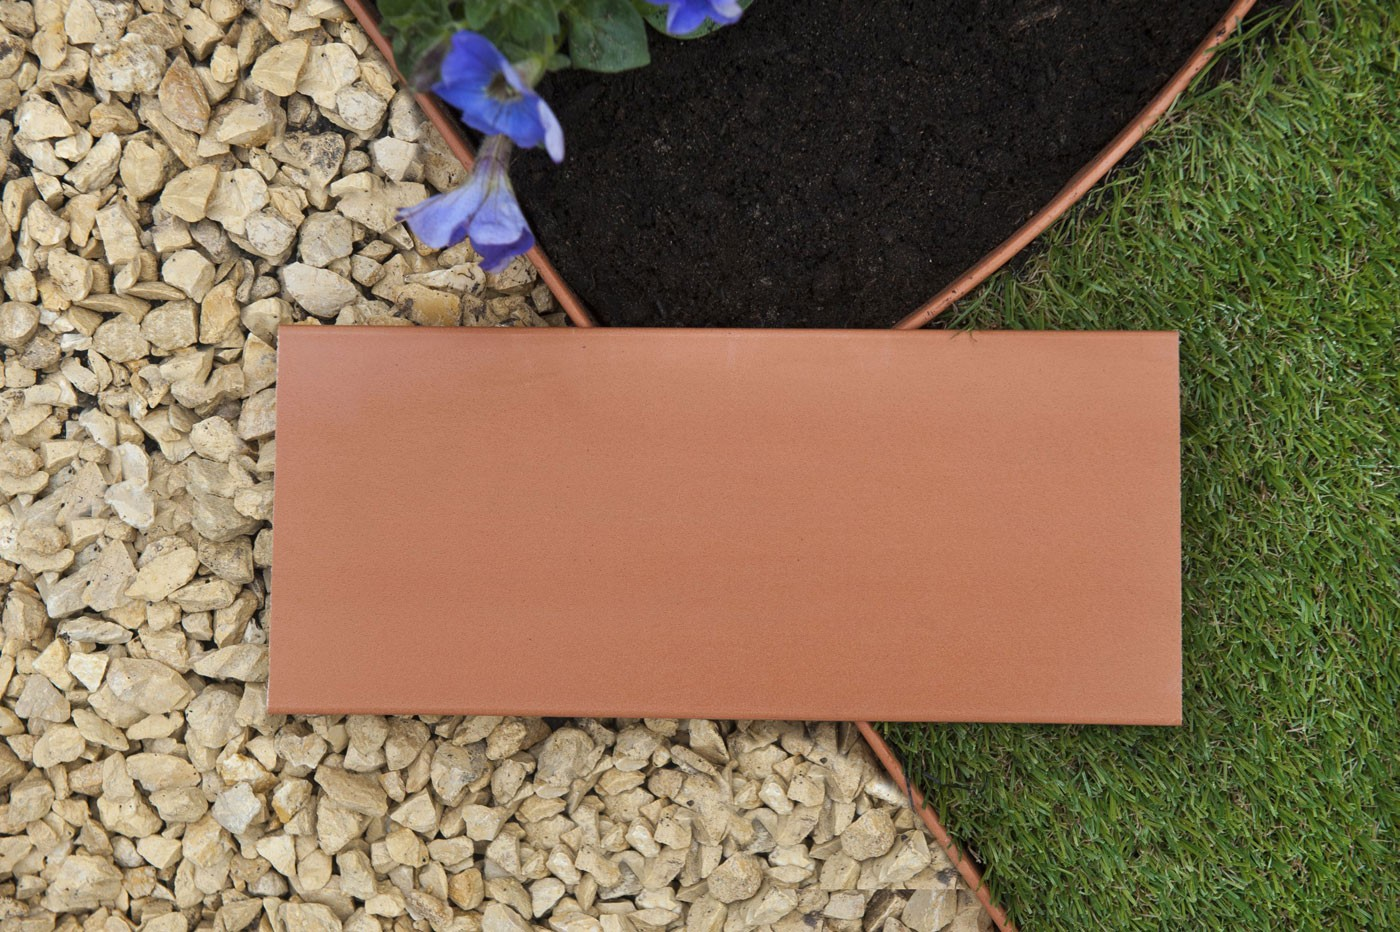 Bordure jardin plastique cm x 5 m terracotta for Bordure de jardin plastique